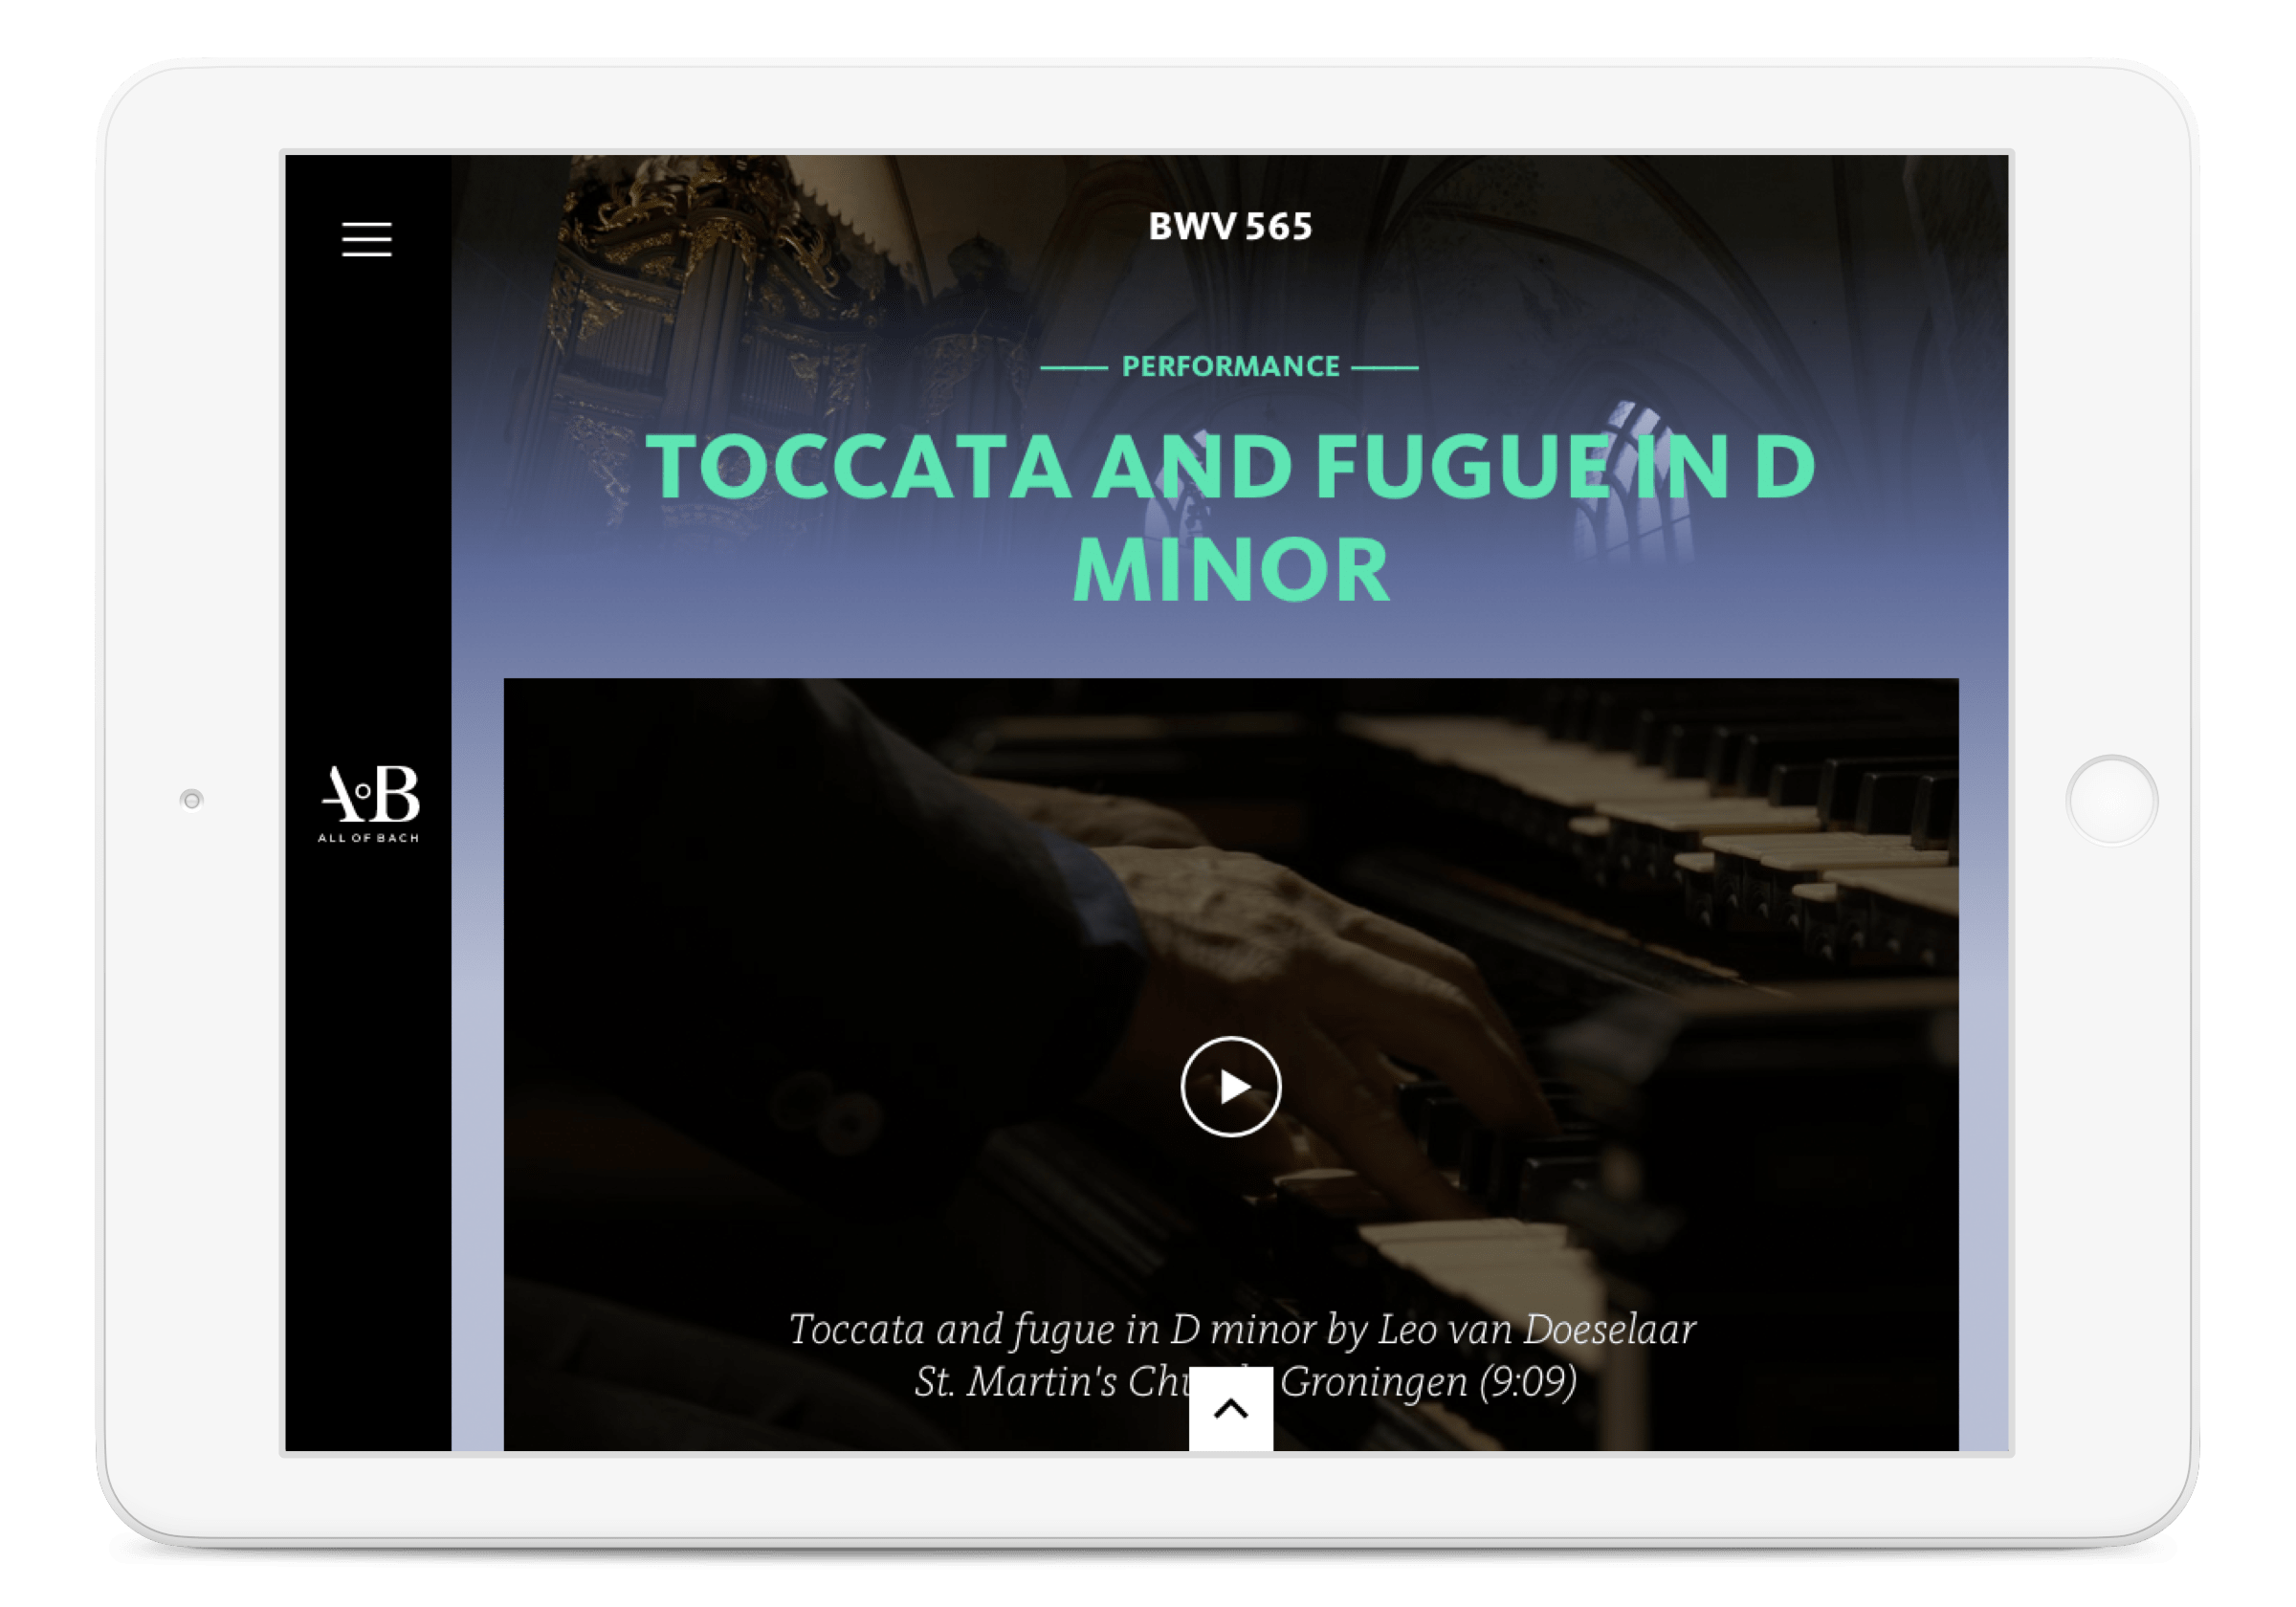 All of Bach website, performance view